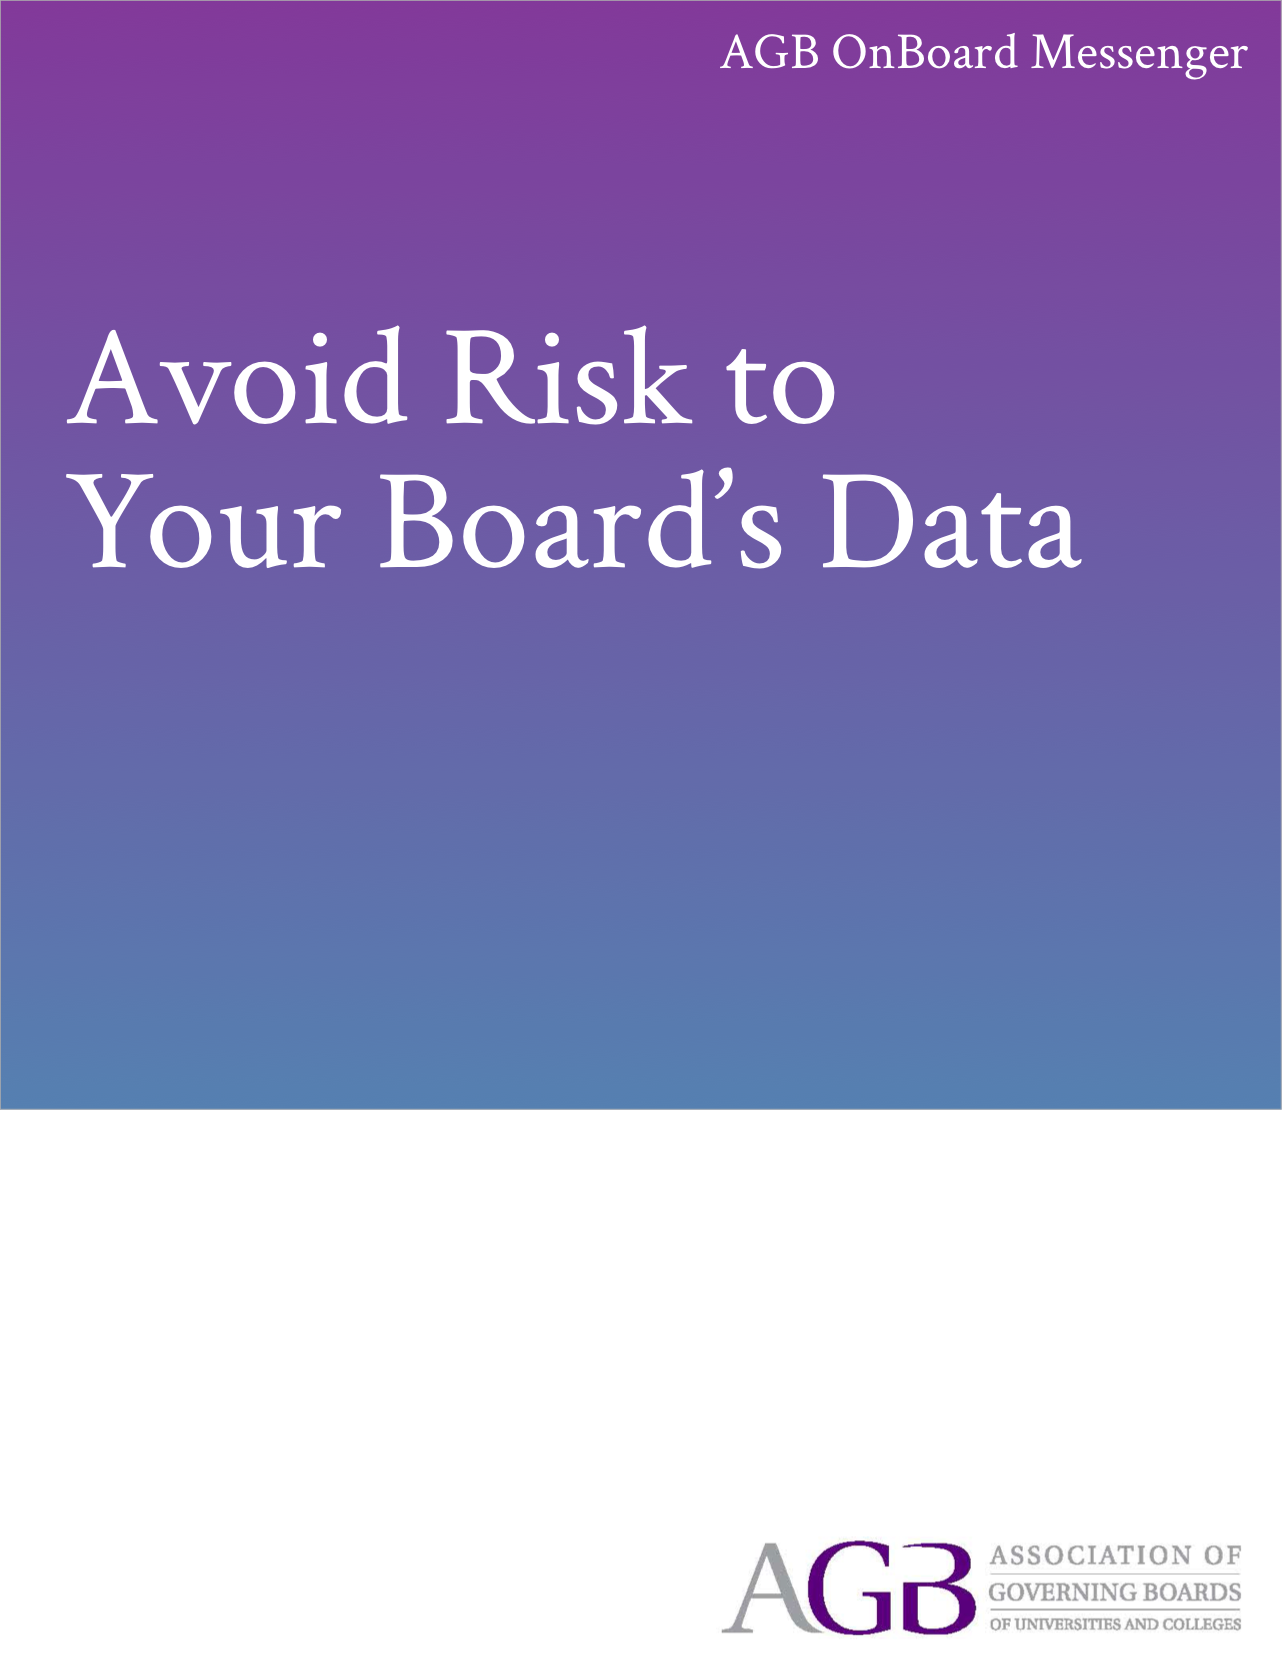 Avoid Risk to Your Board's Data